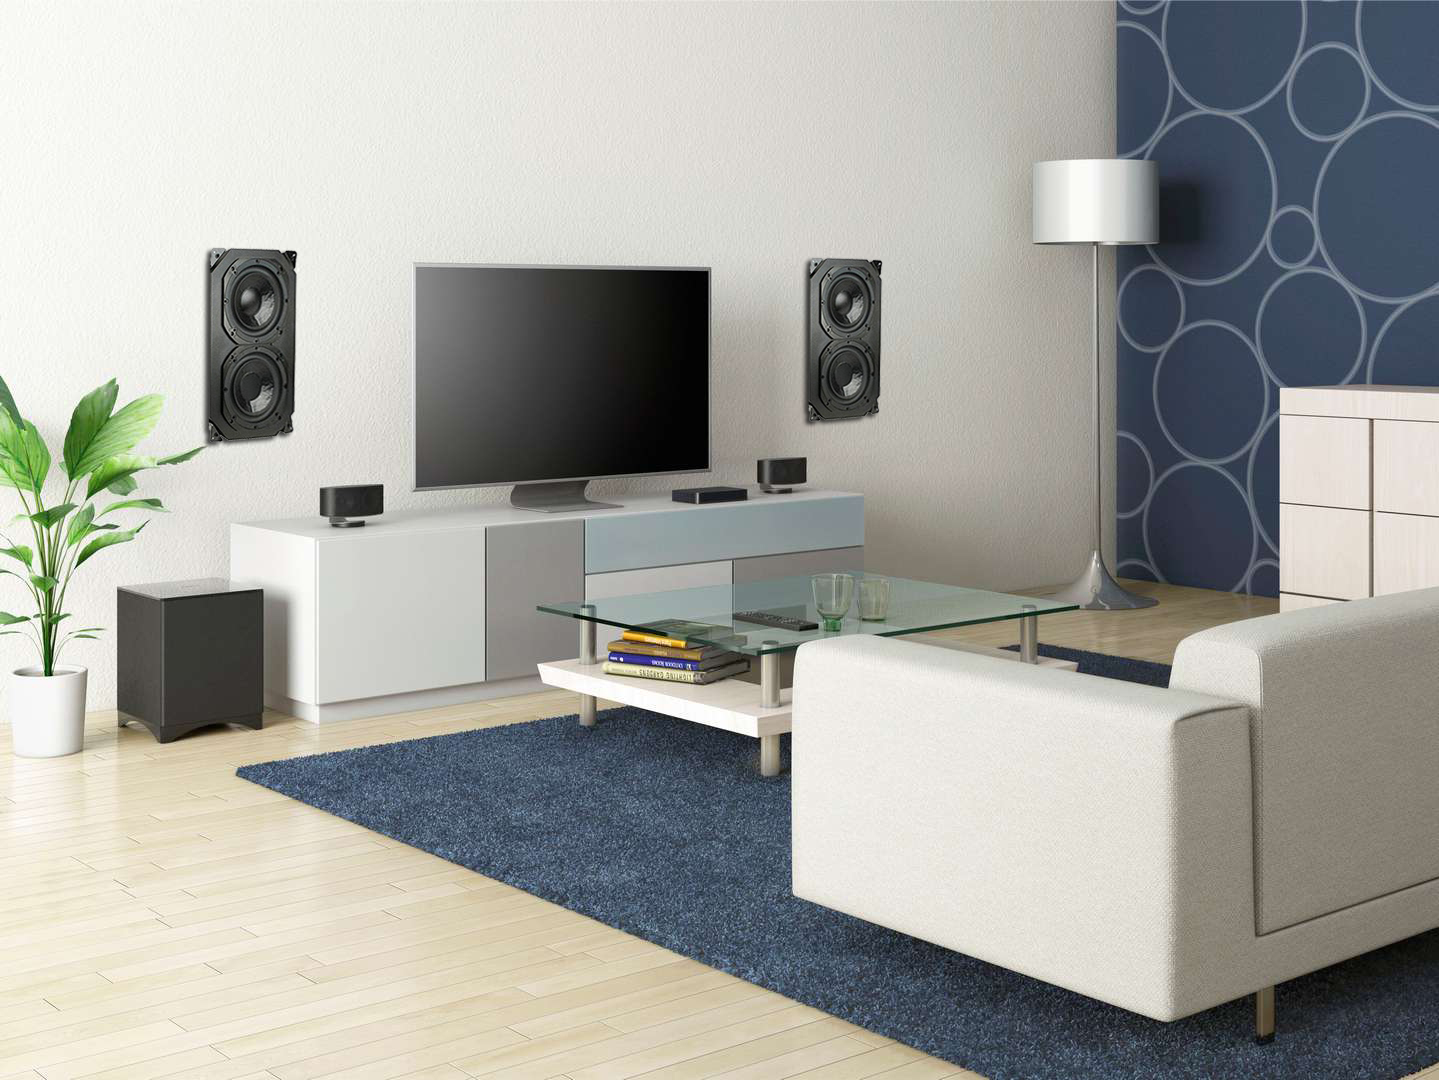 Loa Tannoy iW210s